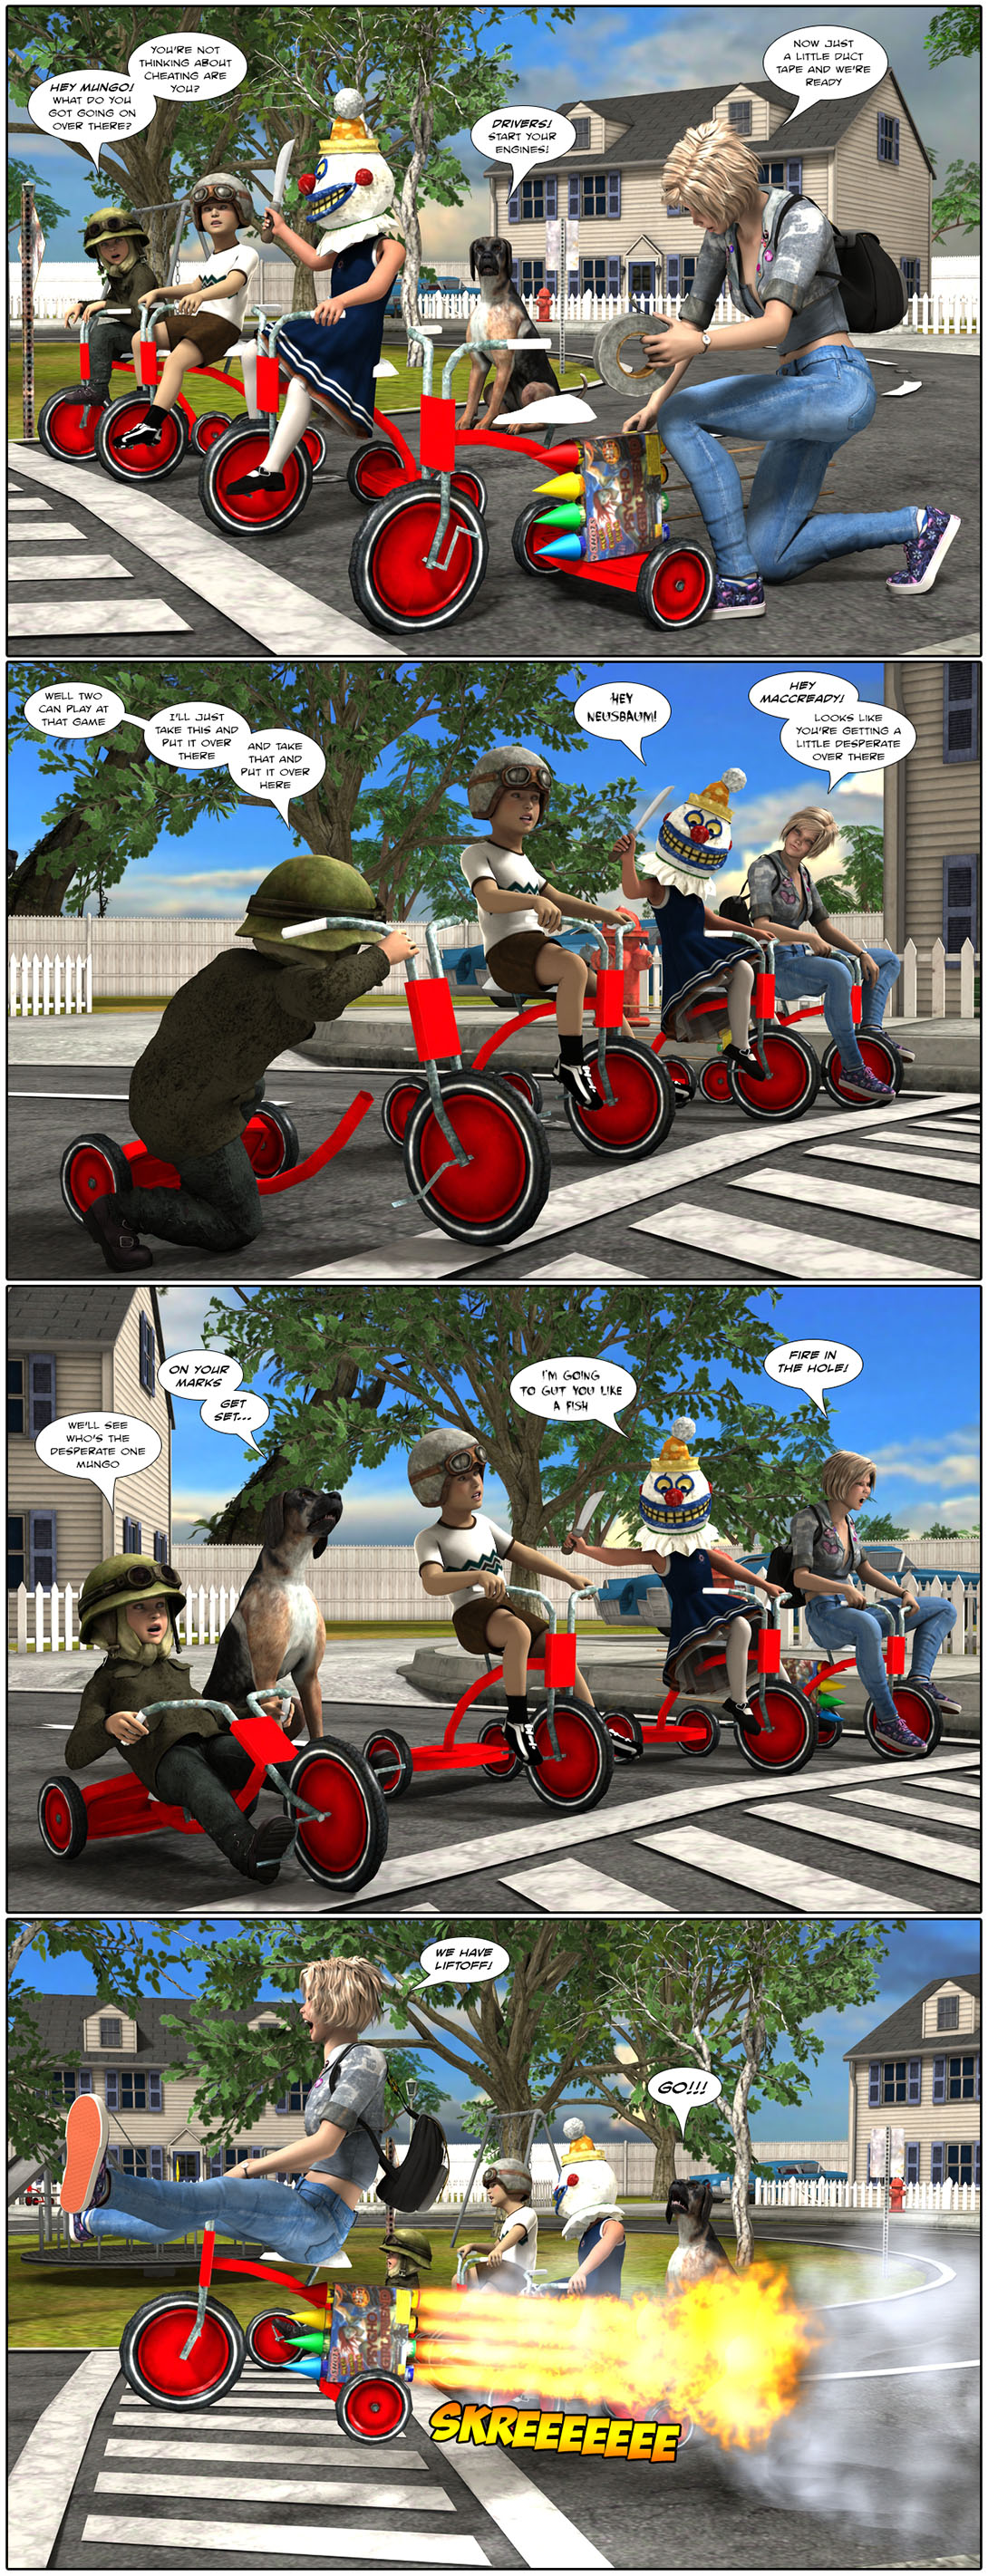 The Great Tranquility Trike Race